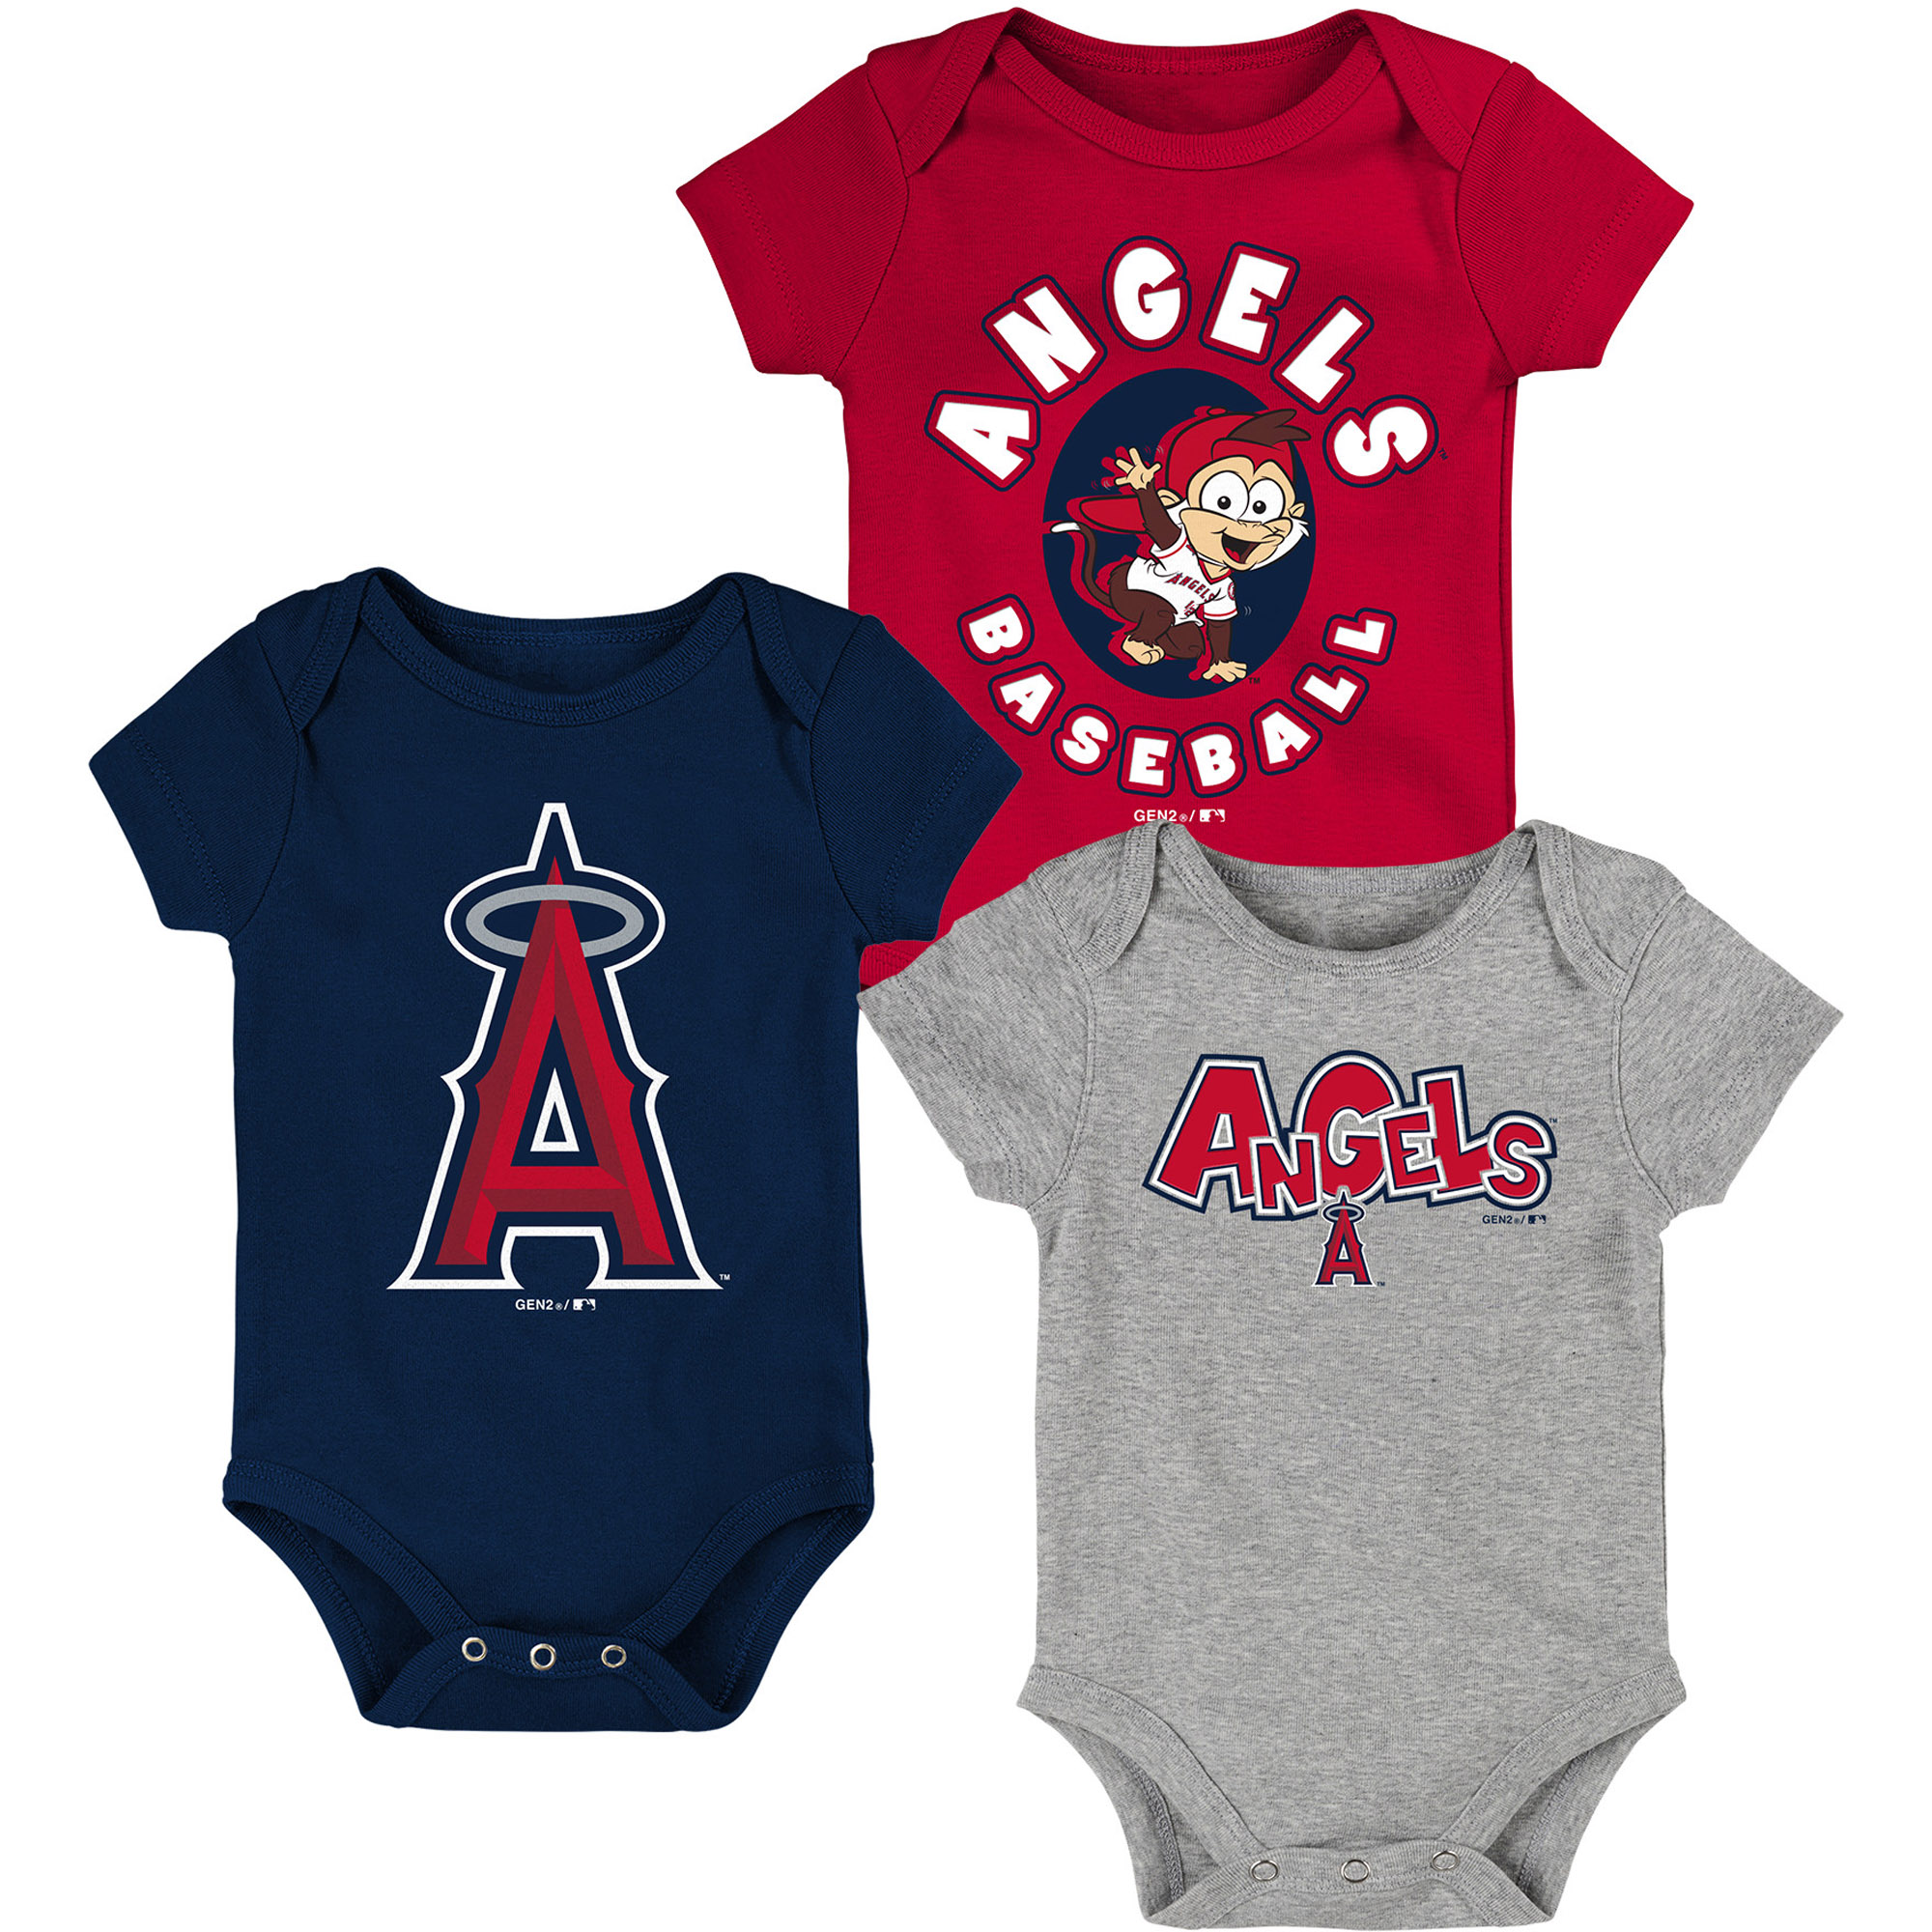 Los Angeles Angels Infant Everyday Fan Three-Pack Bodysuit Set - Red/Navy/Gray